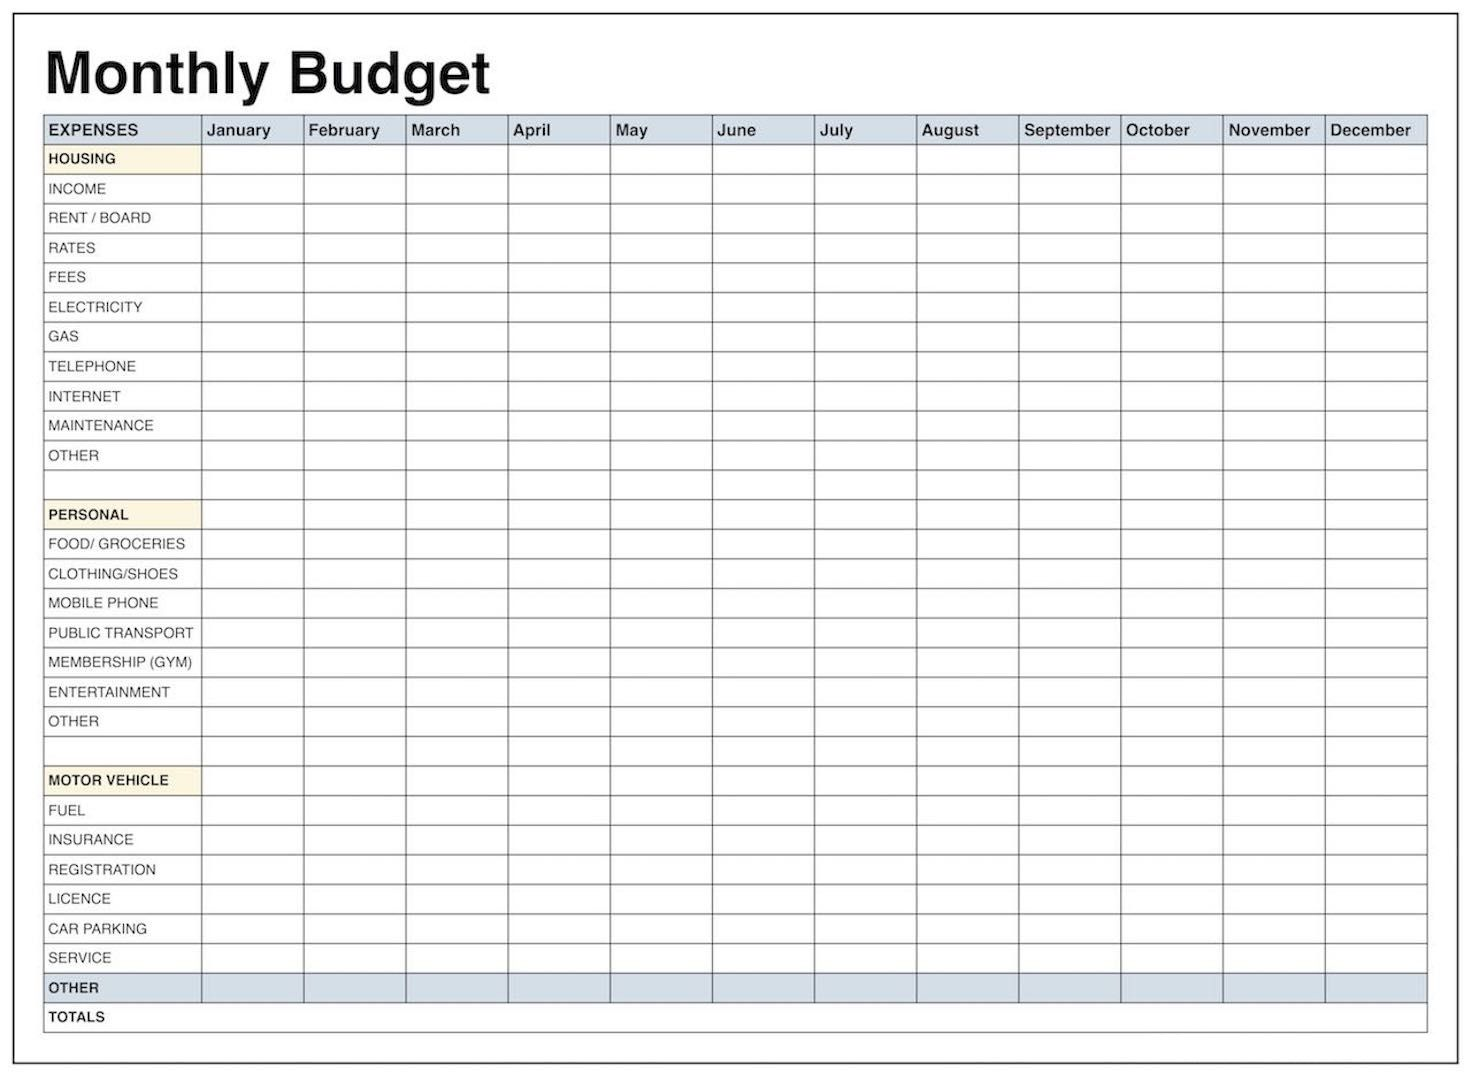 Monthly Budget Planner Budgetcalendar Budgetplanner